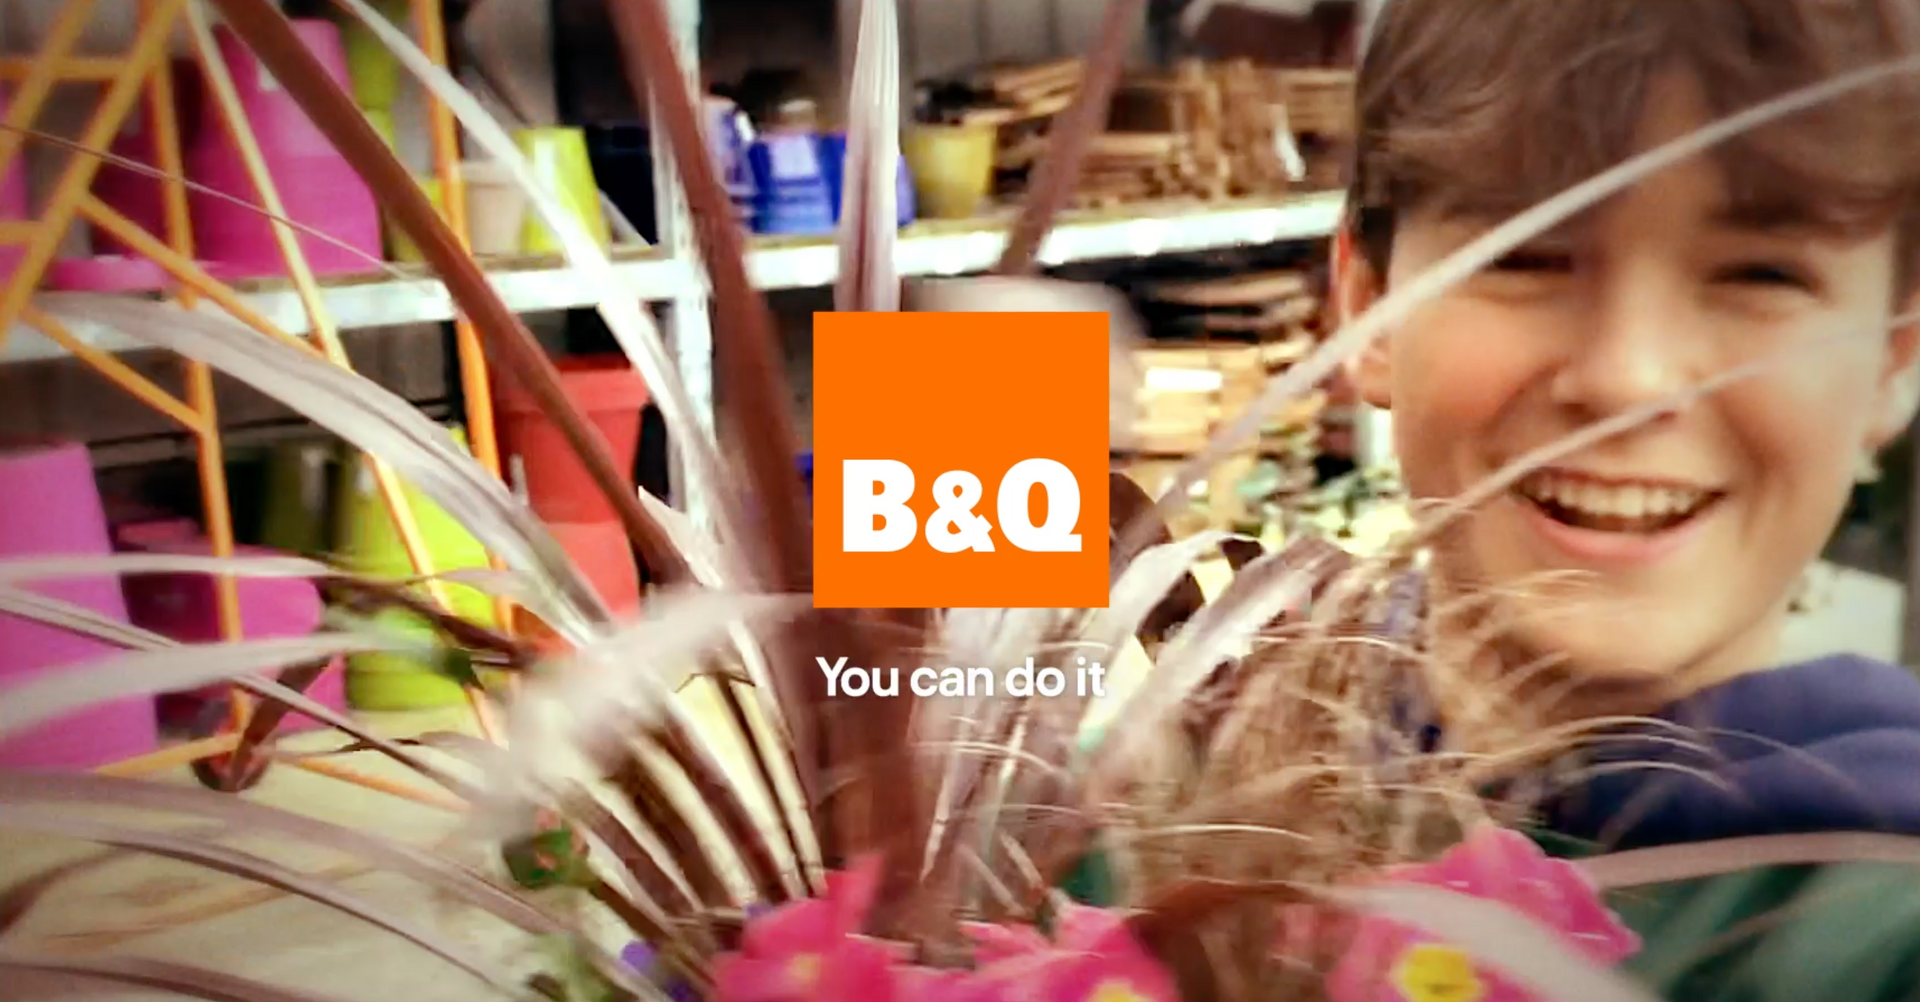 'How to build a life' - B&Q | Knucklehead